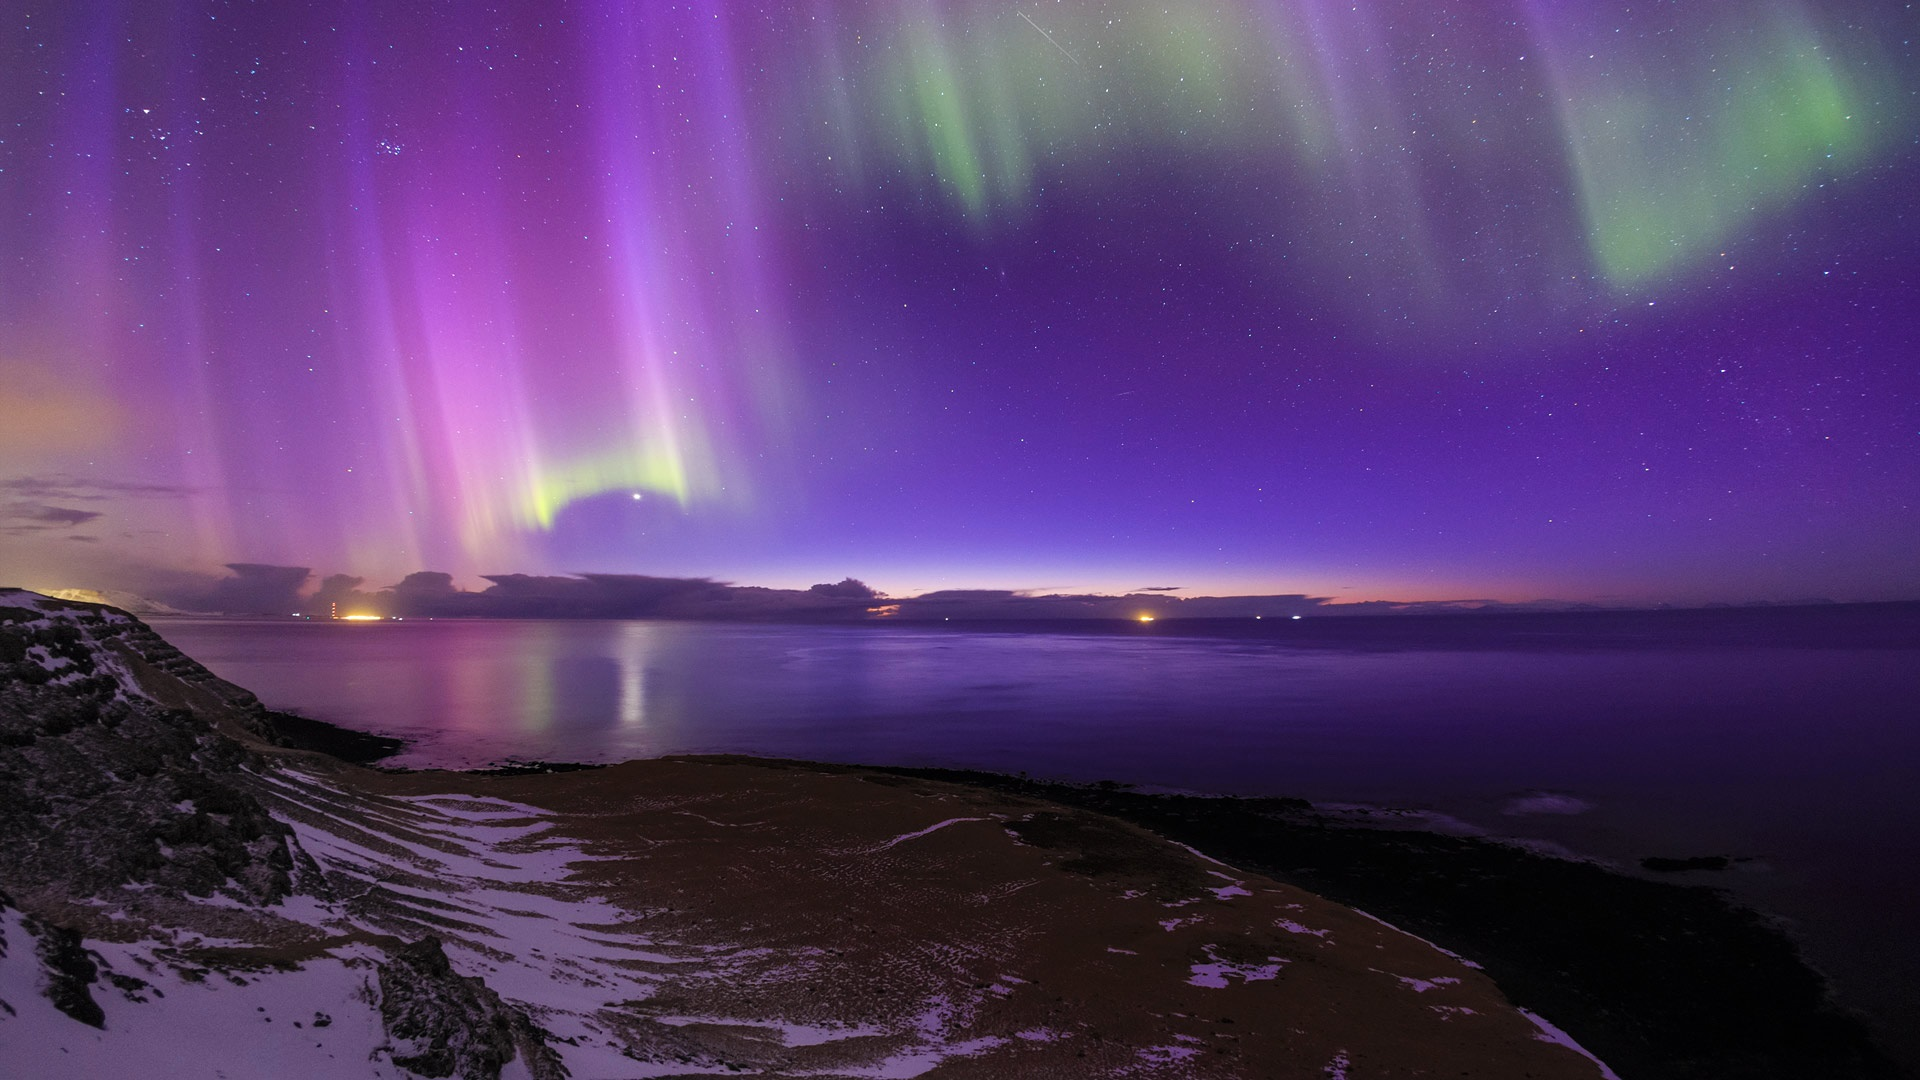 Wallpaper Iceland Northern Lights Sea Coast Night